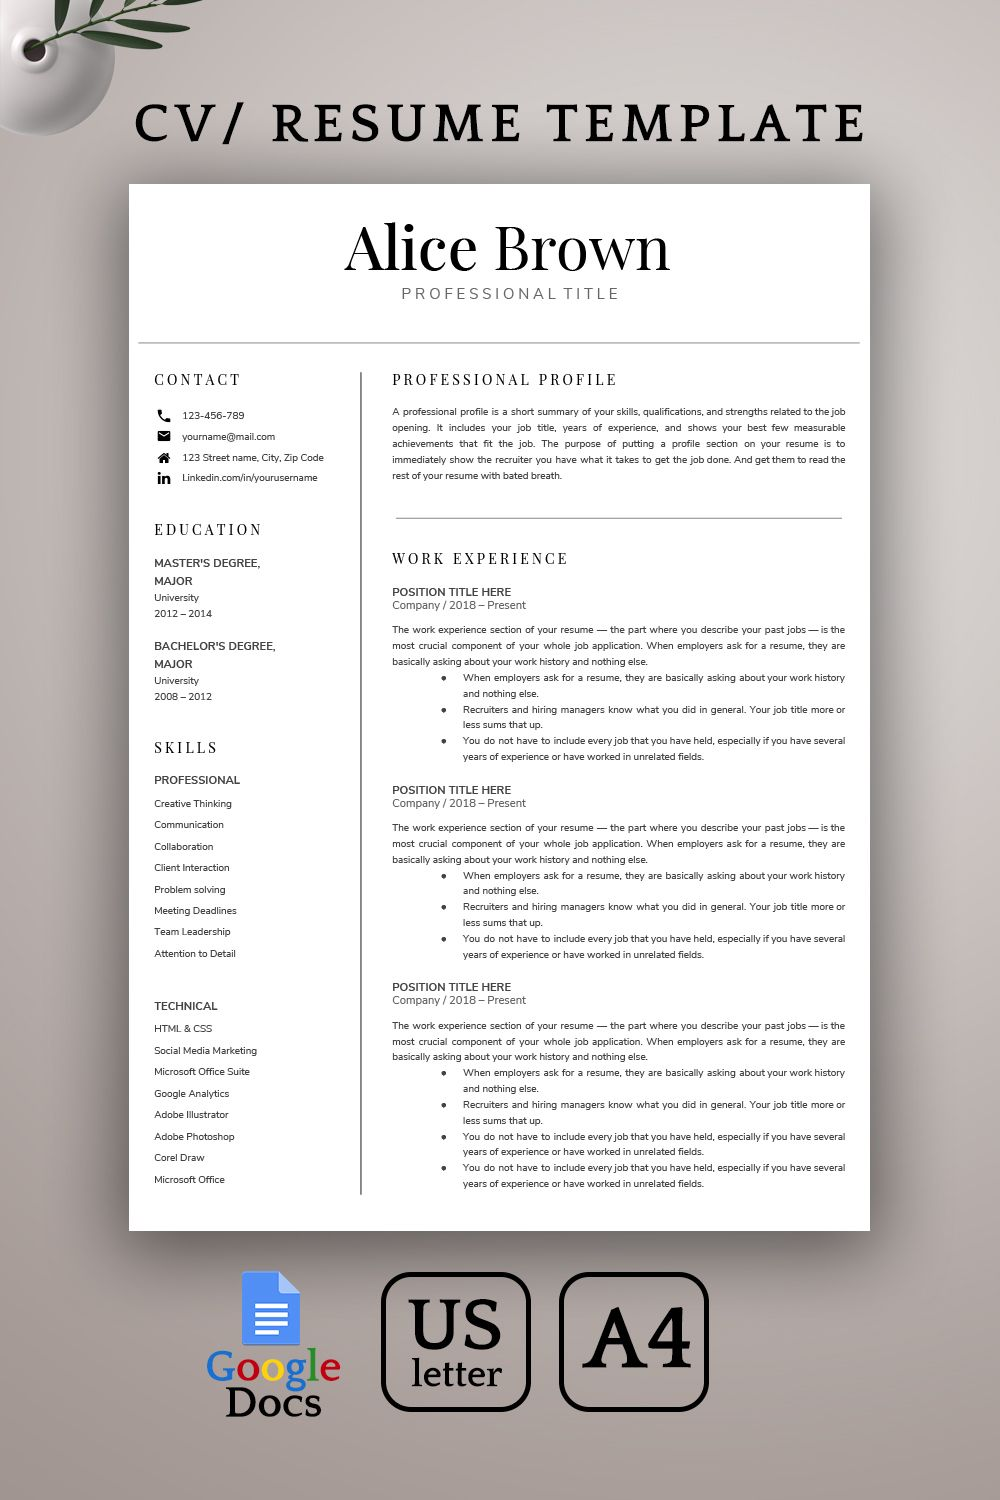 Google Docs Resume Template Creative Resume Template CV